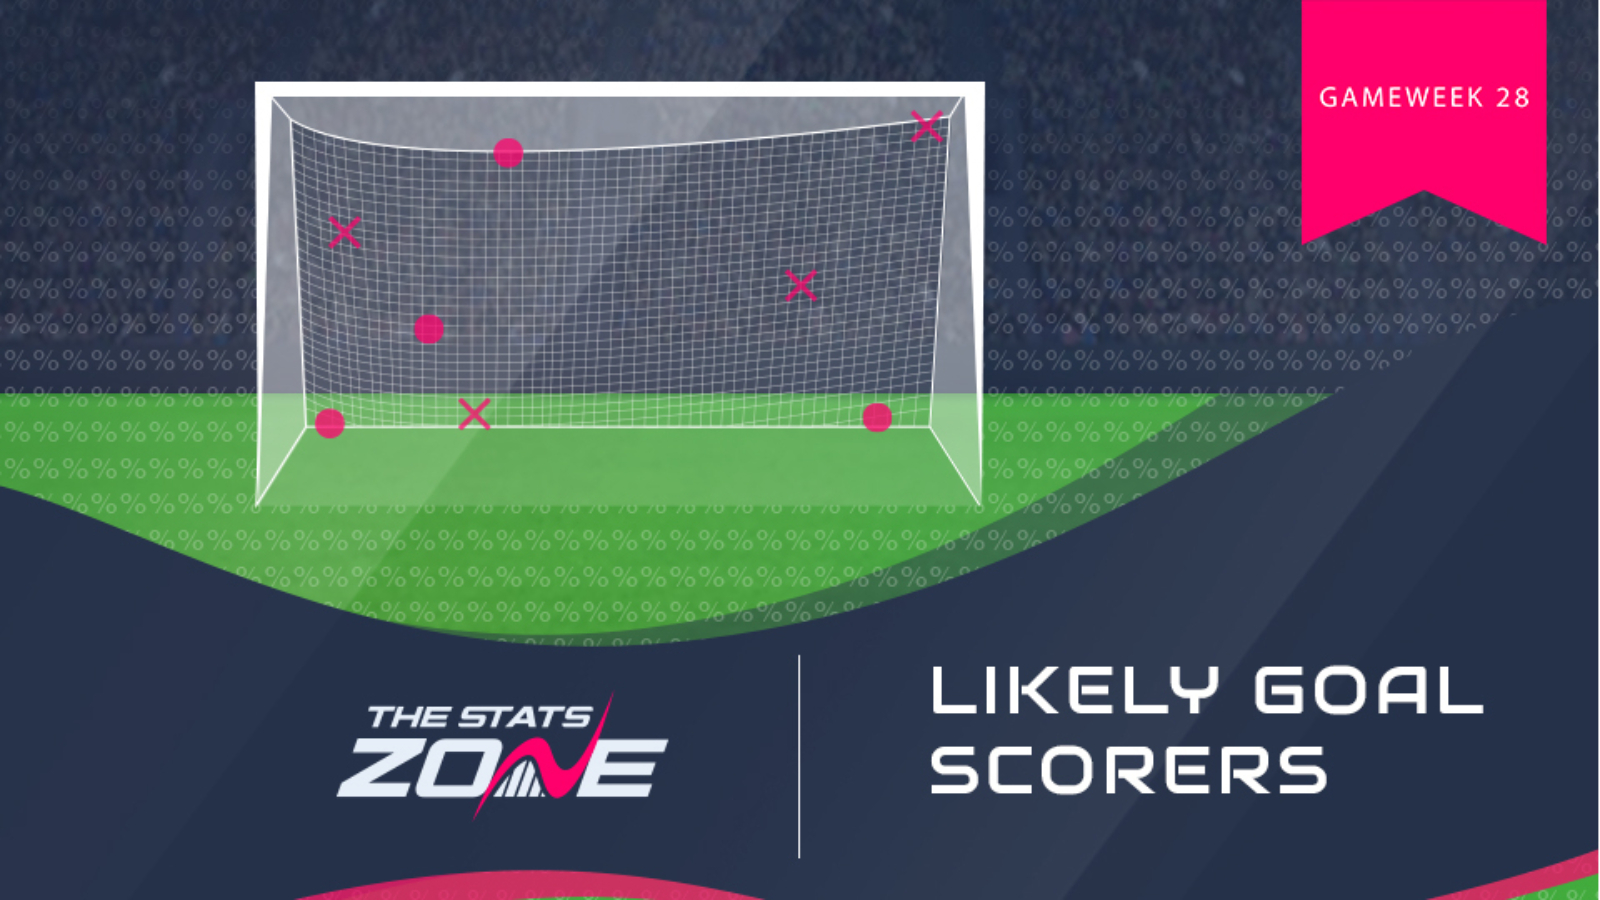 FPL Gameweek 28 – likely goalscorers - The Stats Zone